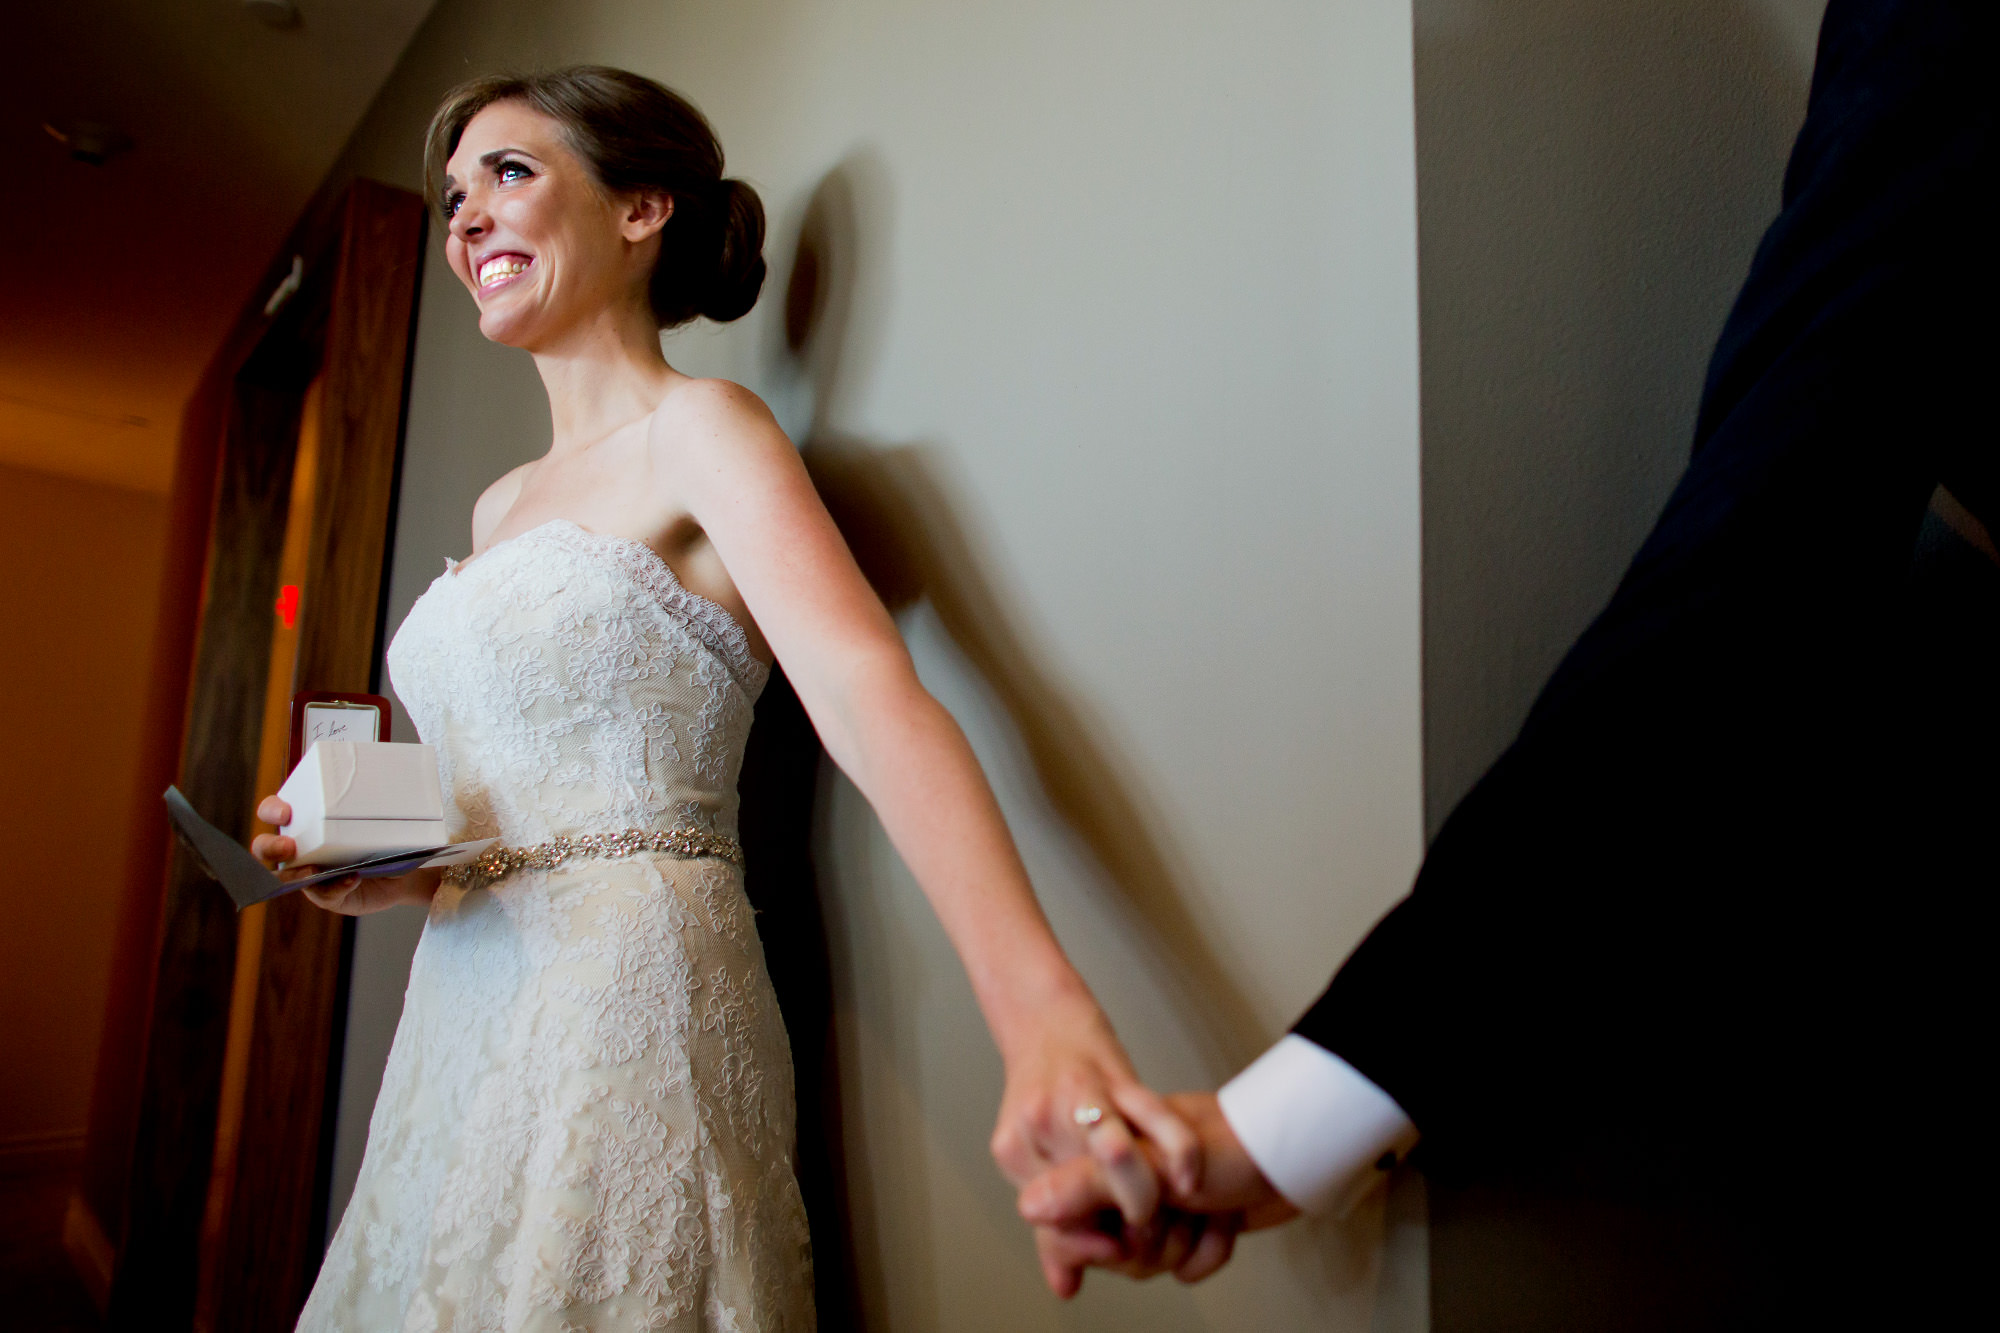 Emotional bride at first look - photo by Ken Pak